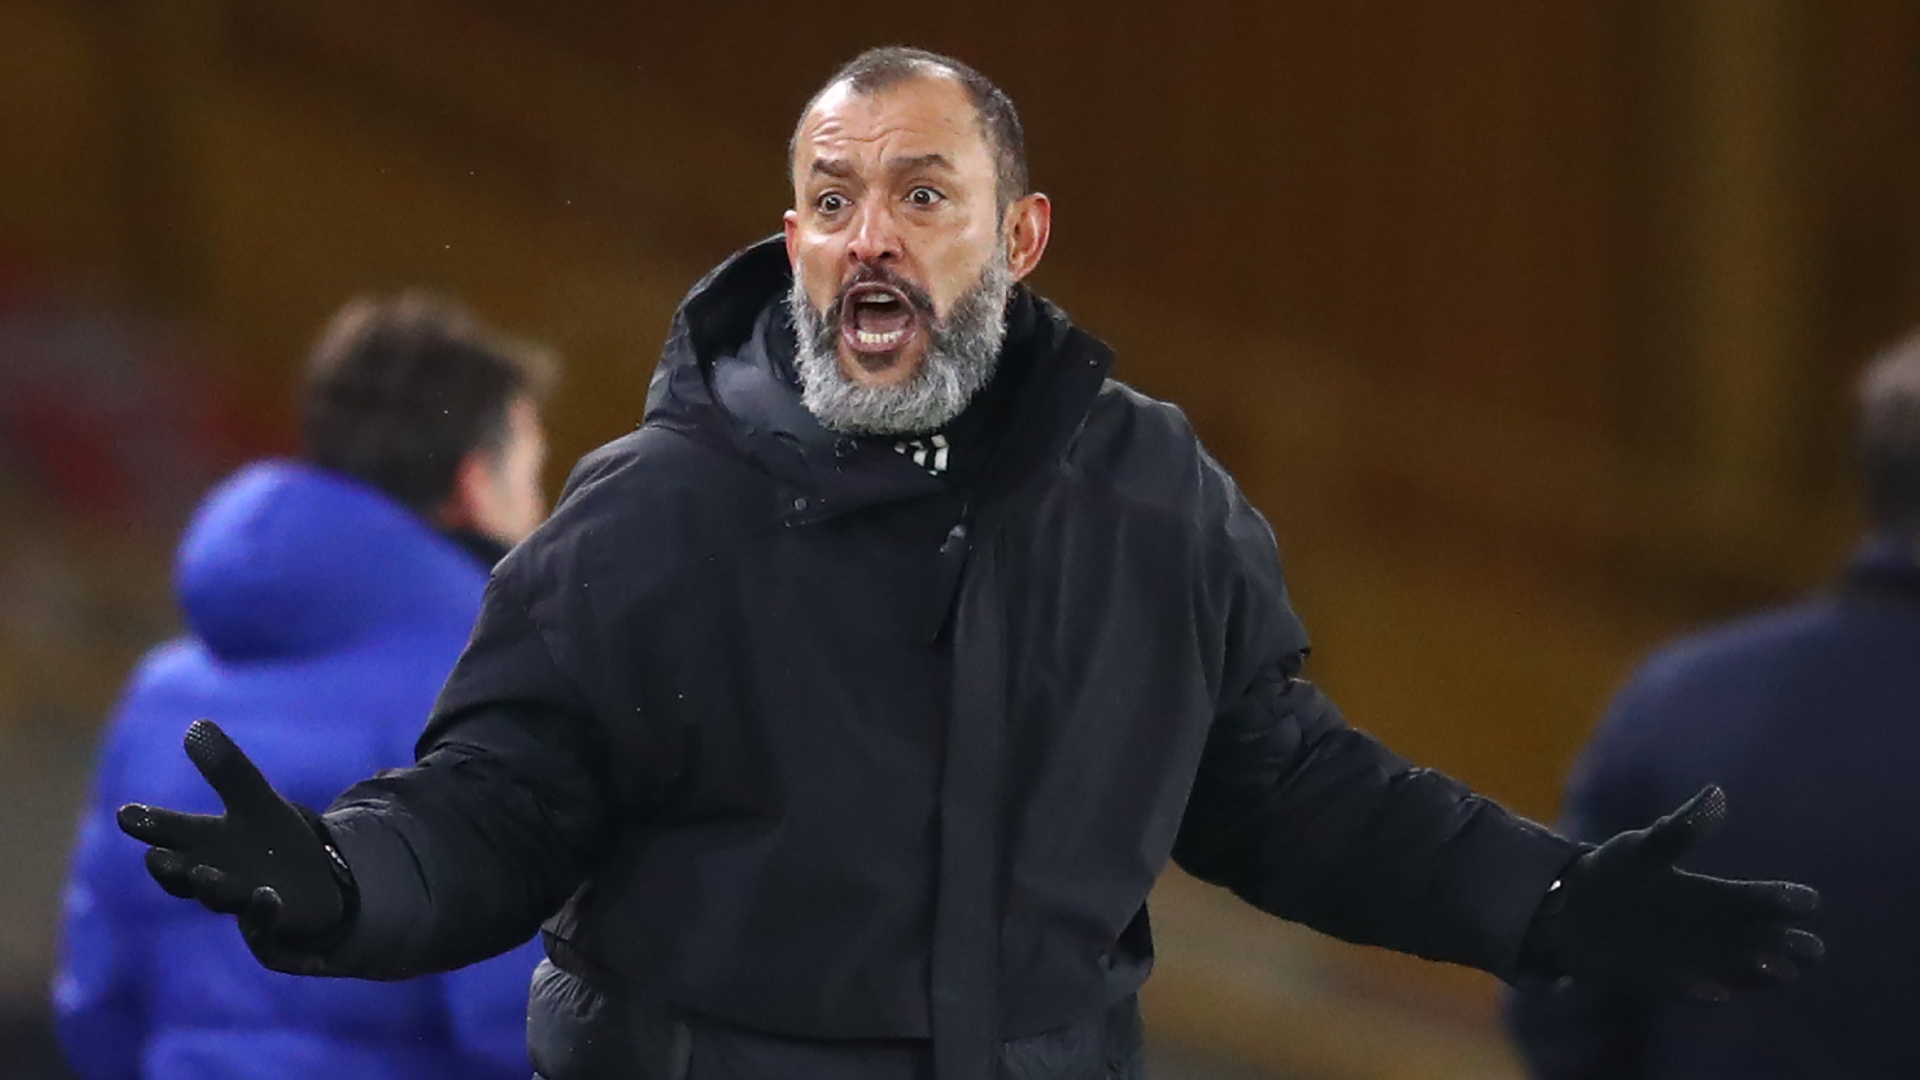 Wolves players banned from going shopping amid coronavirus fears